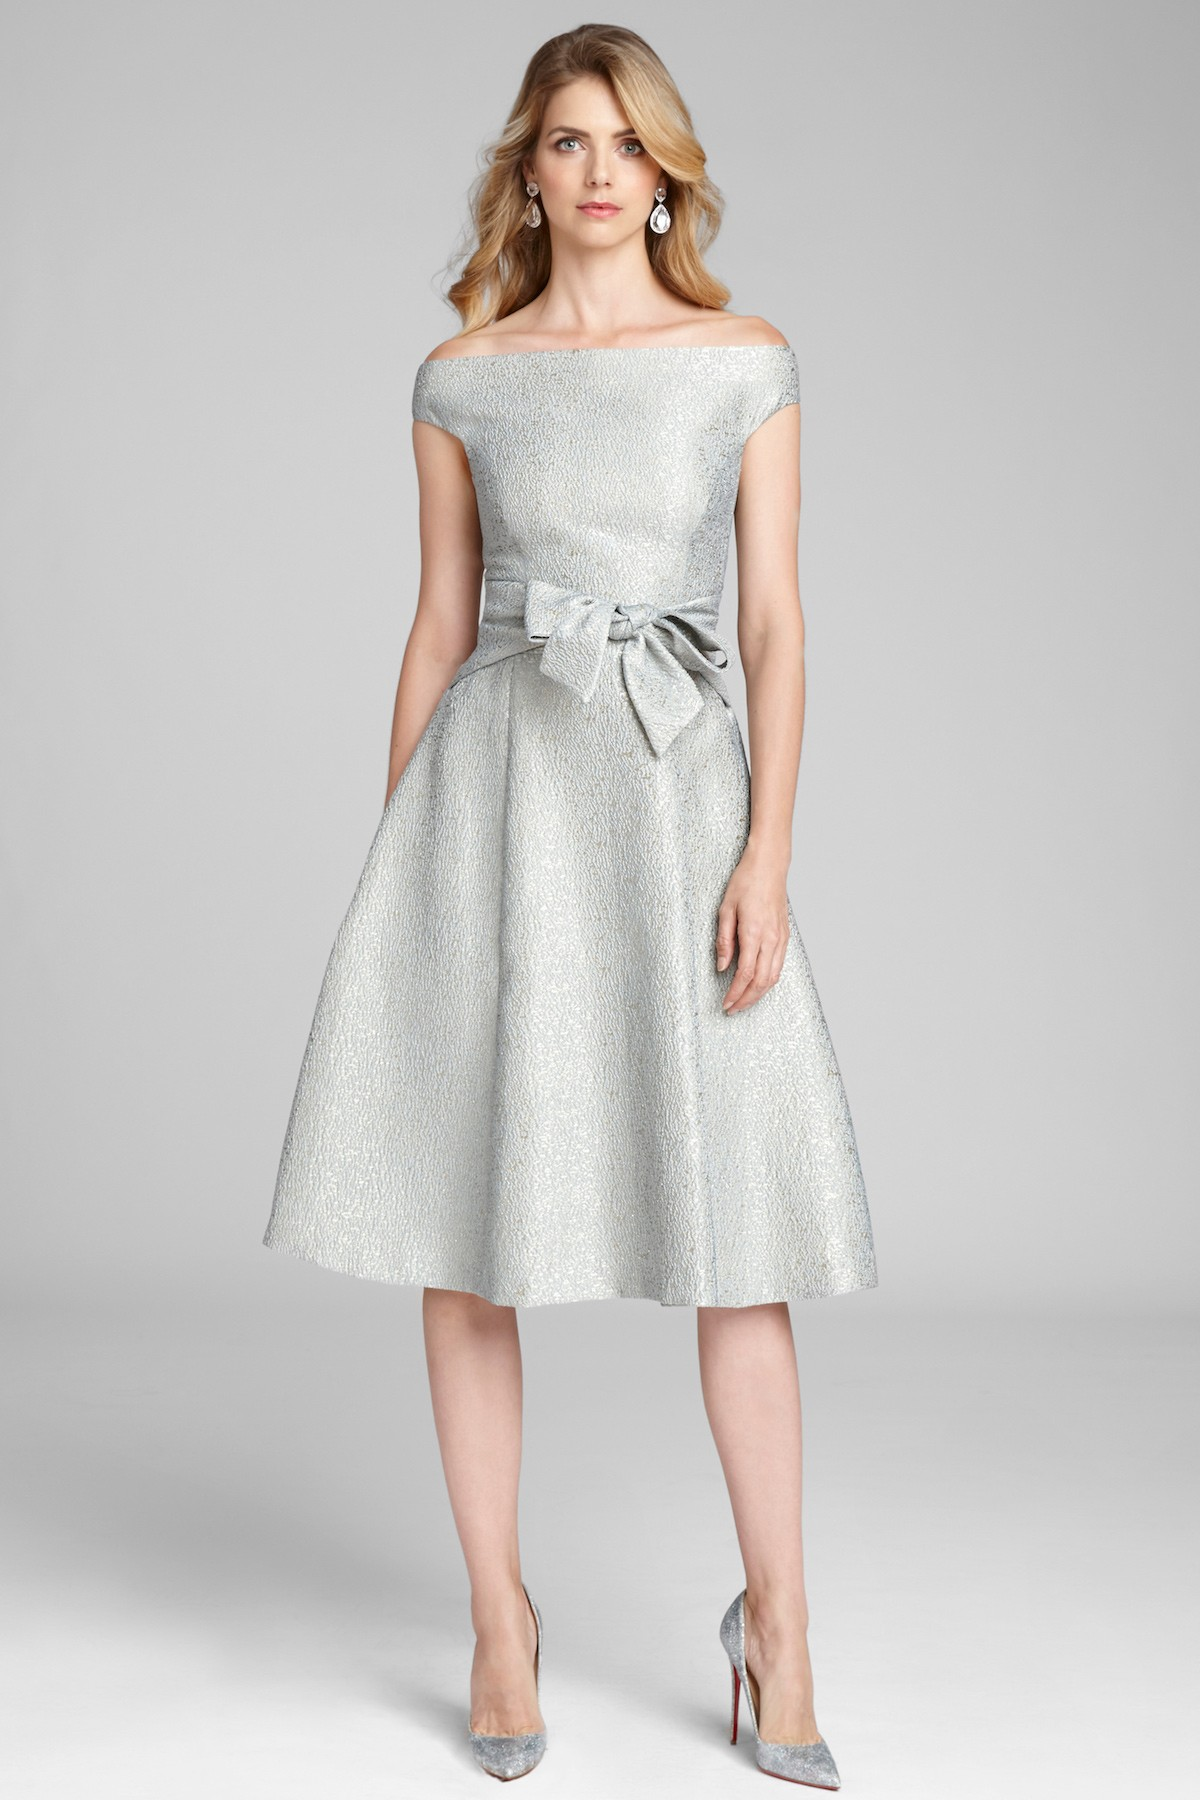 where to shop for mother of the bride dresses